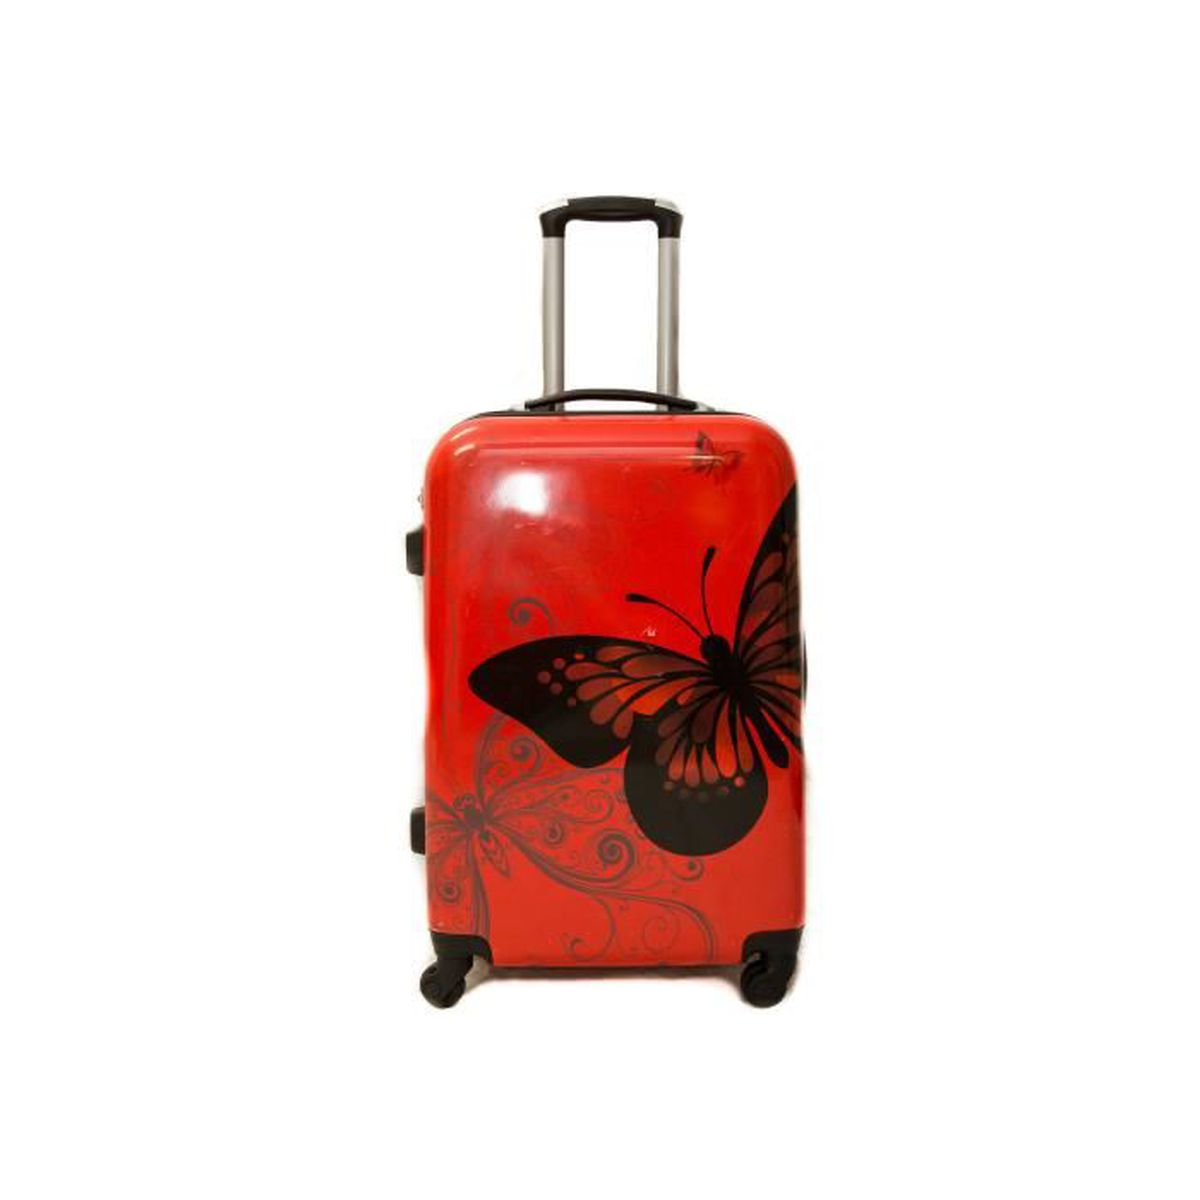 valise trolley moyenne 4 roues 65cm sole ultra leger rouge rouge achat vente valise. Black Bedroom Furniture Sets. Home Design Ideas